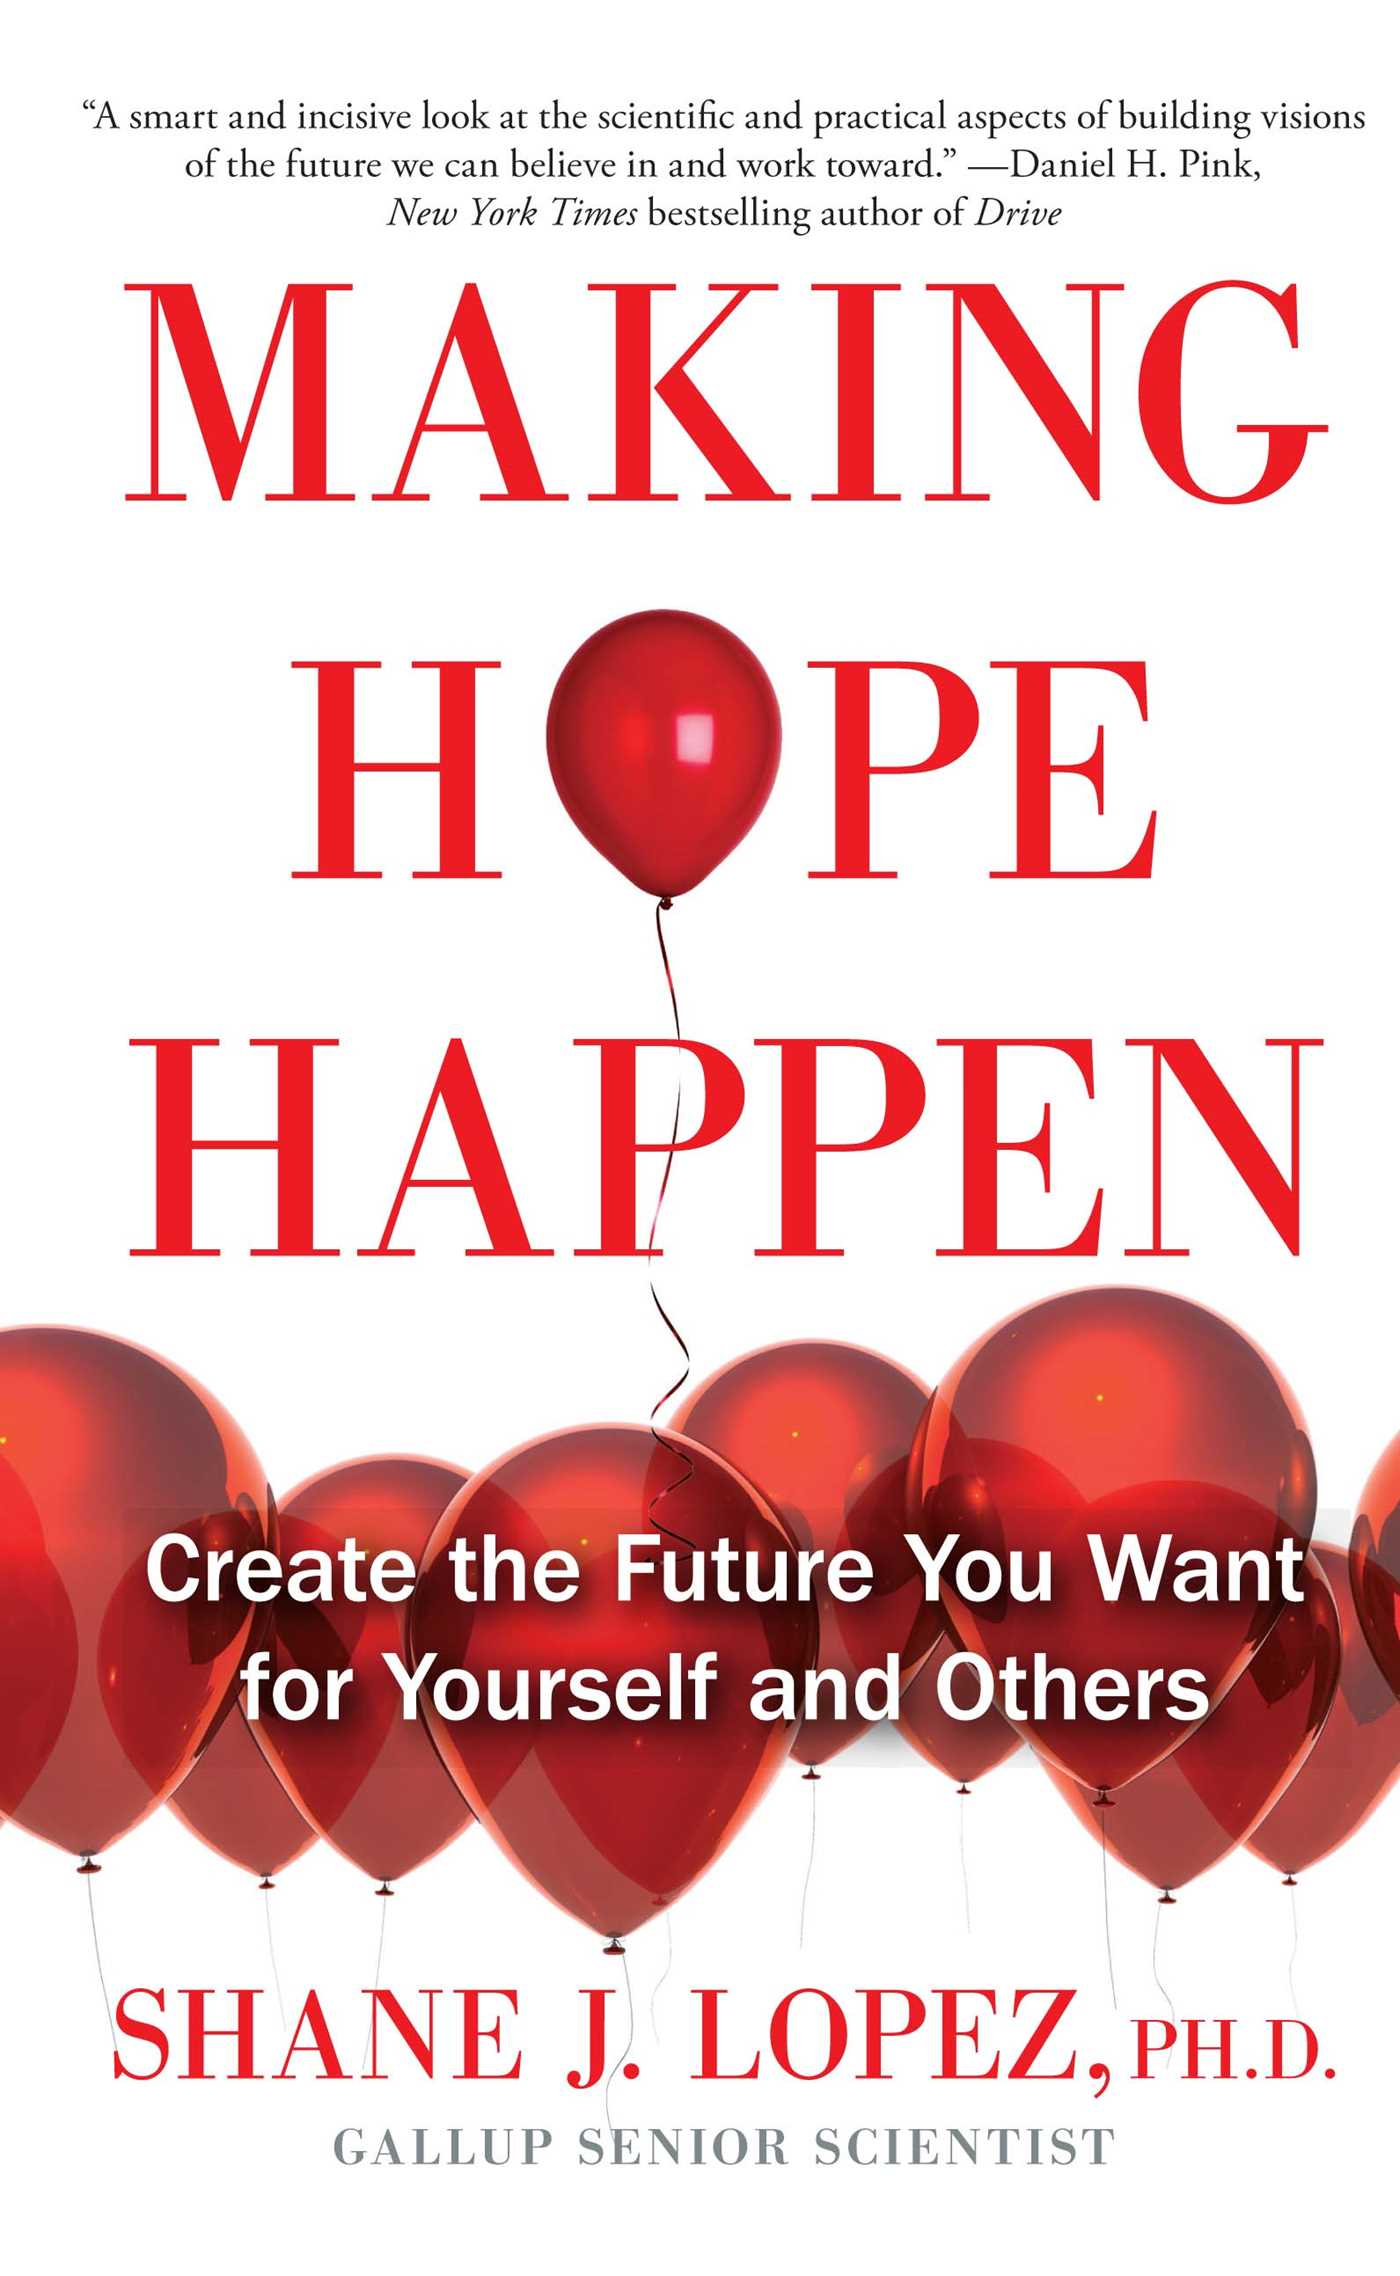 Making hope happen 9781451666236 hr